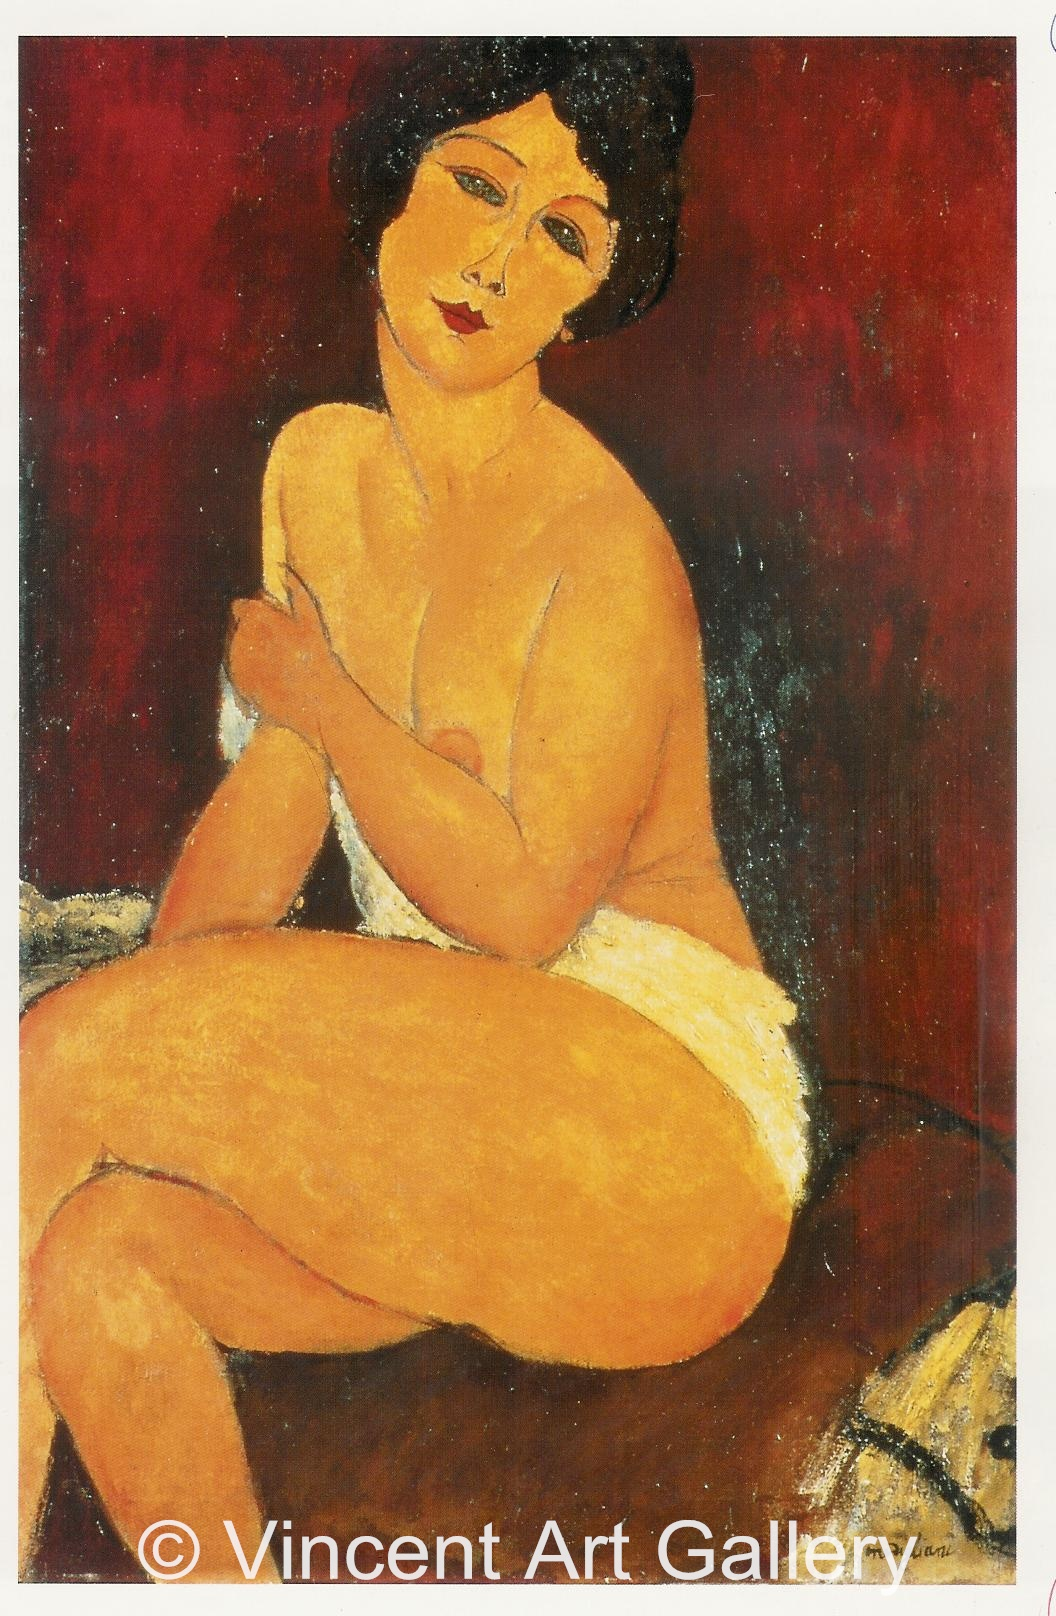 A266, MODIGLIANI, Nude, Sitting on a Couch